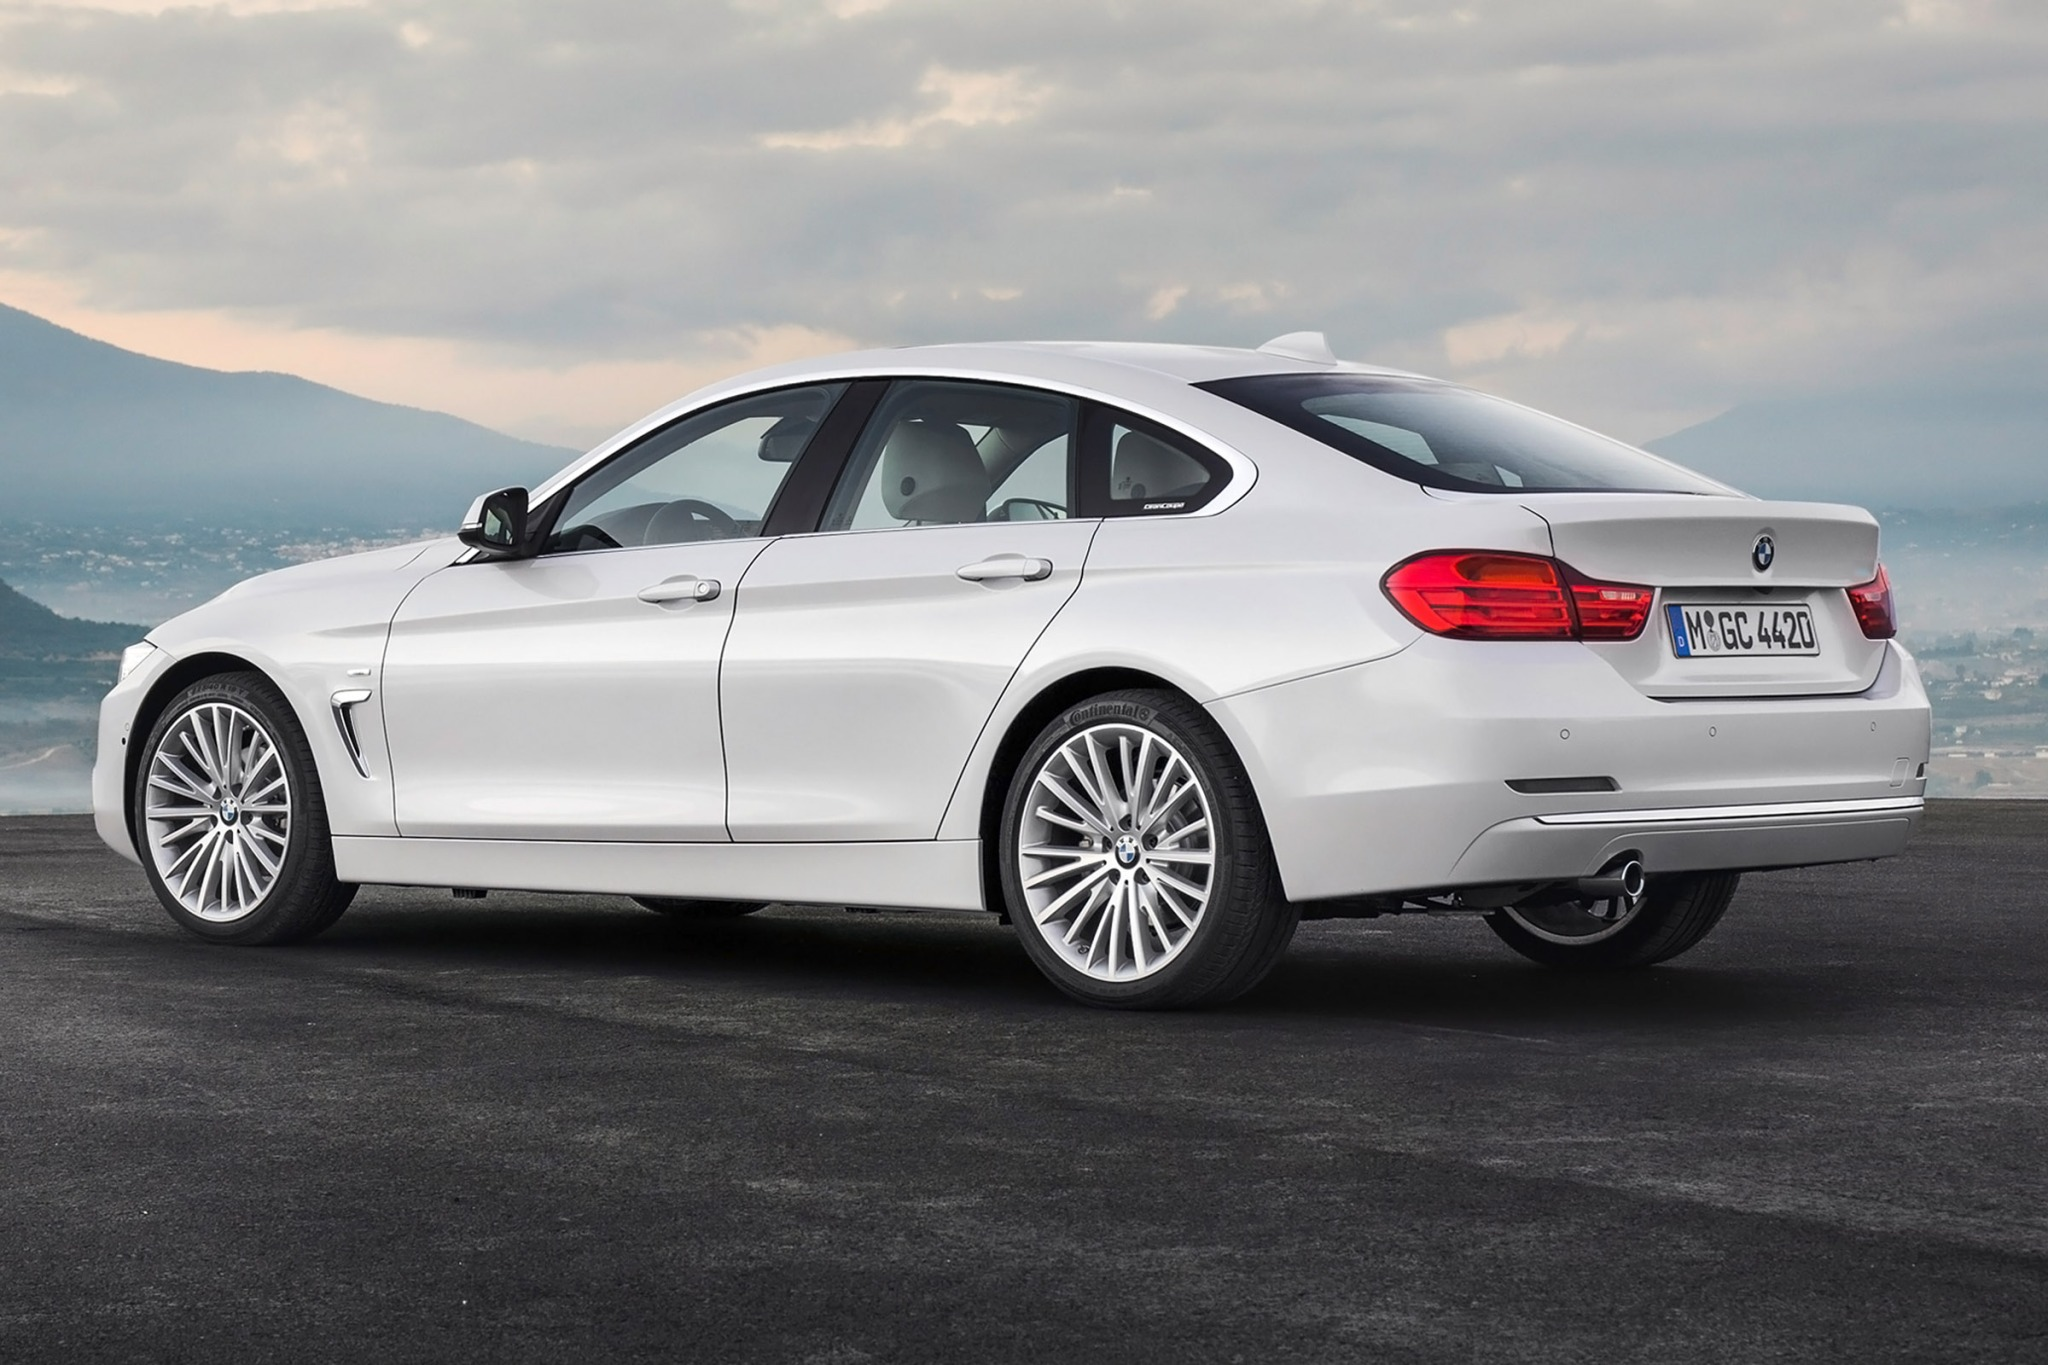 2015 bmw 4 series gran coupe white side rear view 356. Black Bedroom Furniture Sets. Home Design Ideas